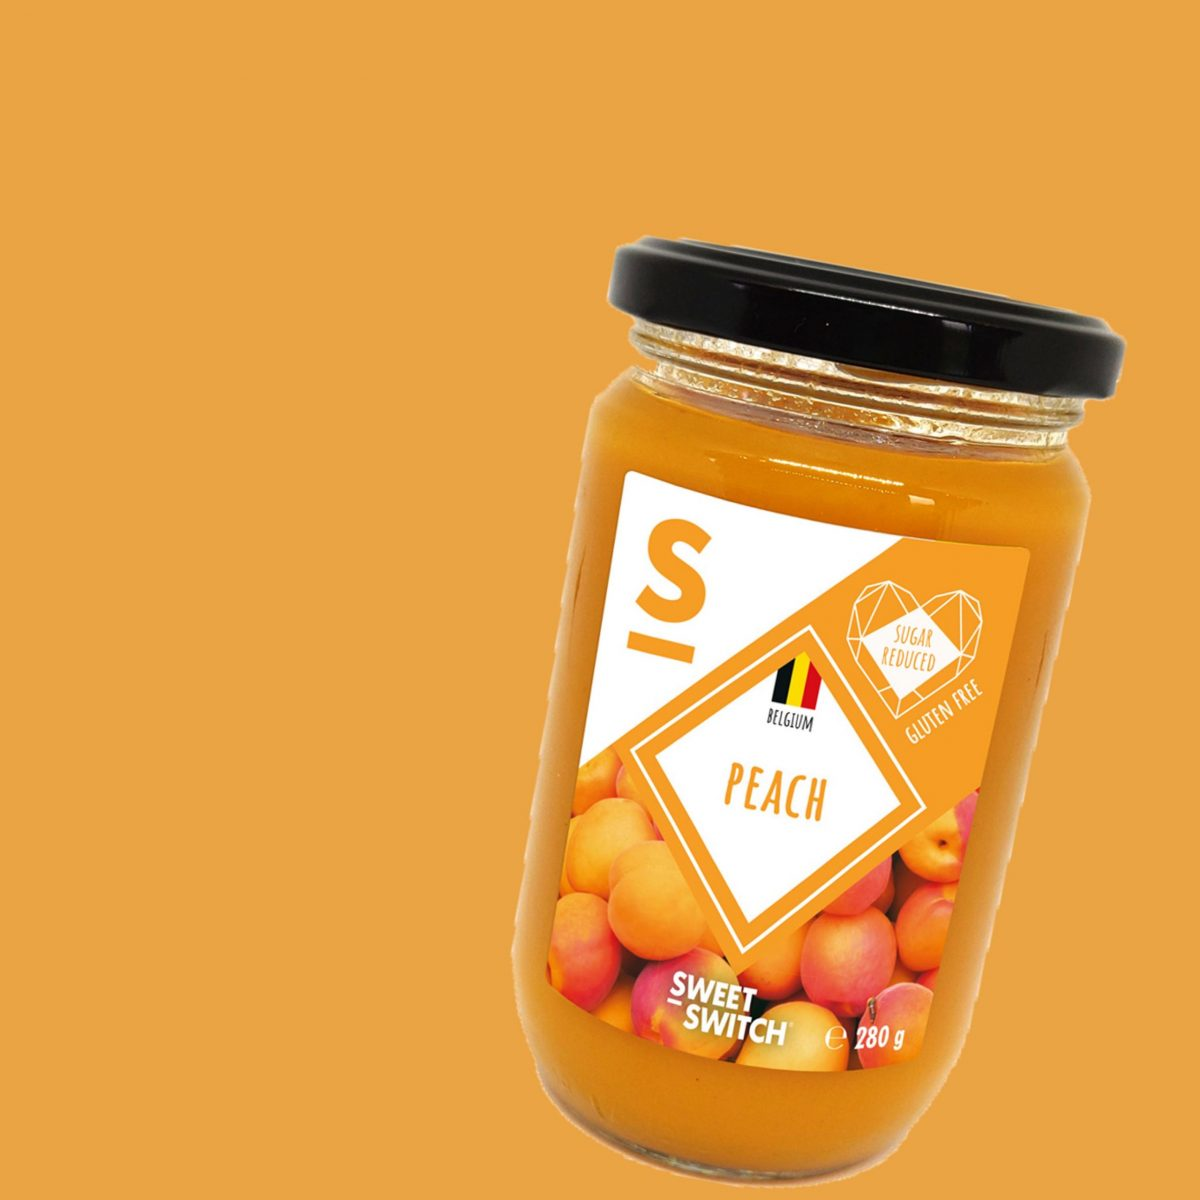 SWEET-SWITCH peach fruit spread